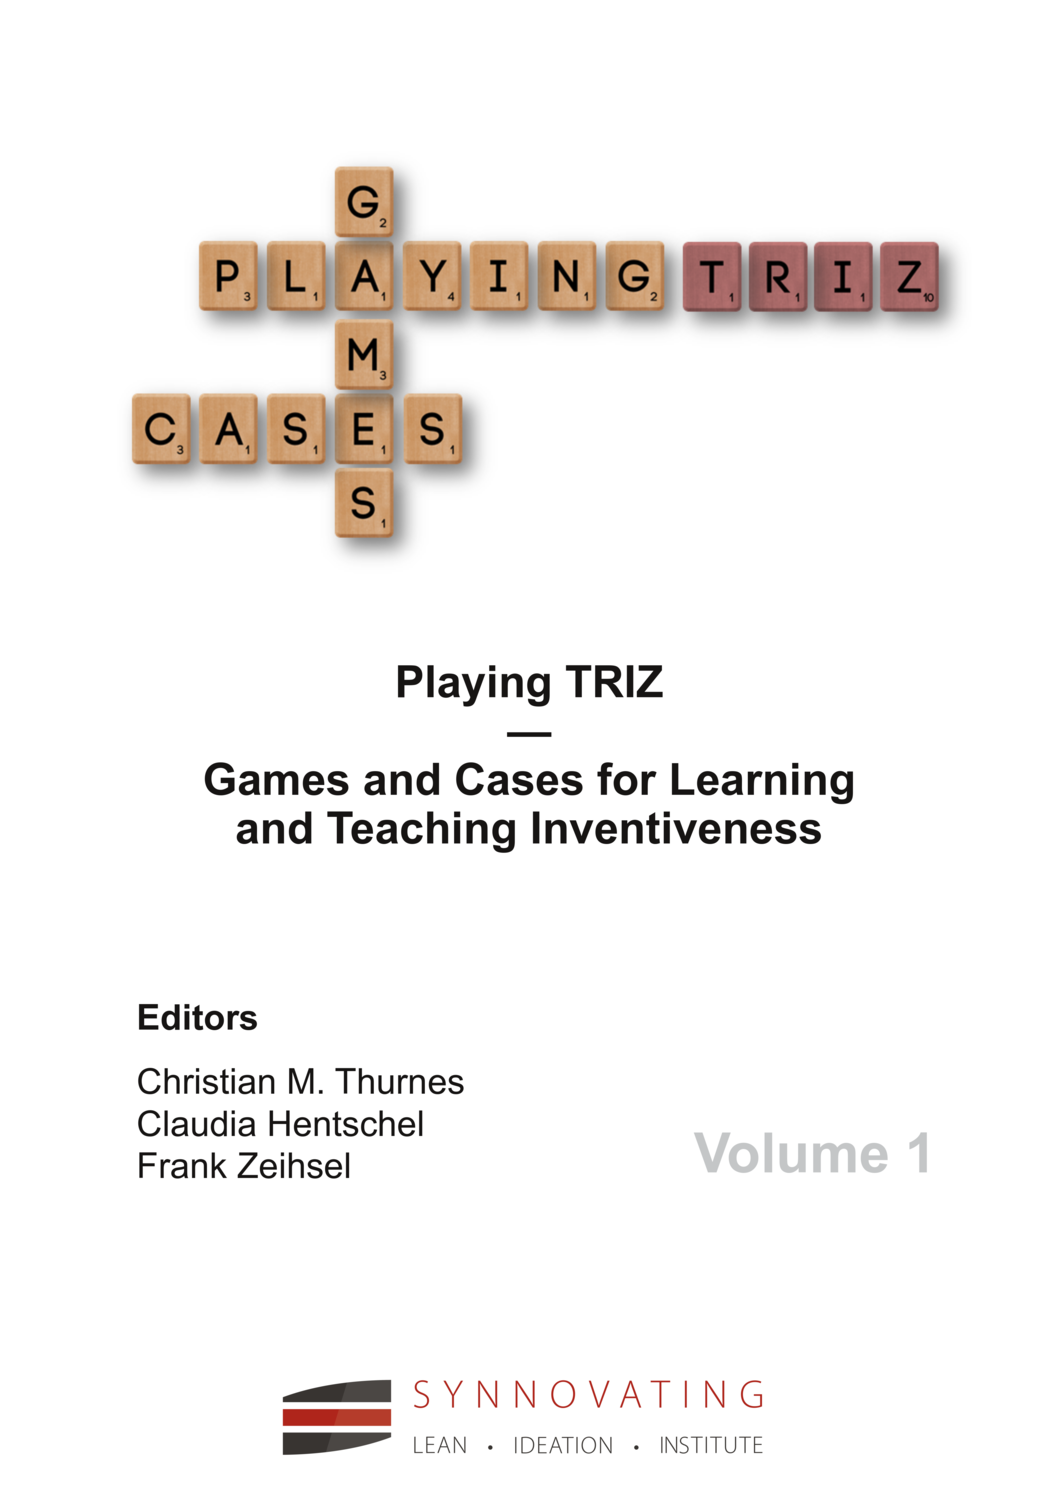 Thurnes/Hentschel/Zeihsel: Playing TRIZ Vol. 1 - Games and Cases for Learning and Teaching Inventiveness